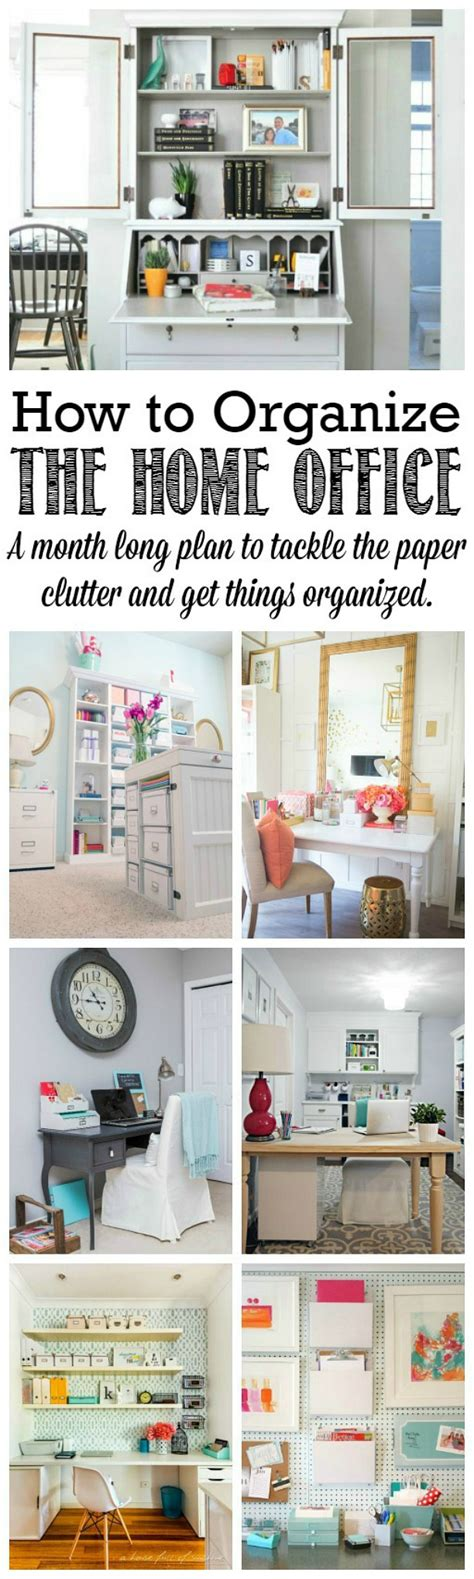 How To Organize A Home Office | the 2016 household organization diet clean and scentsible